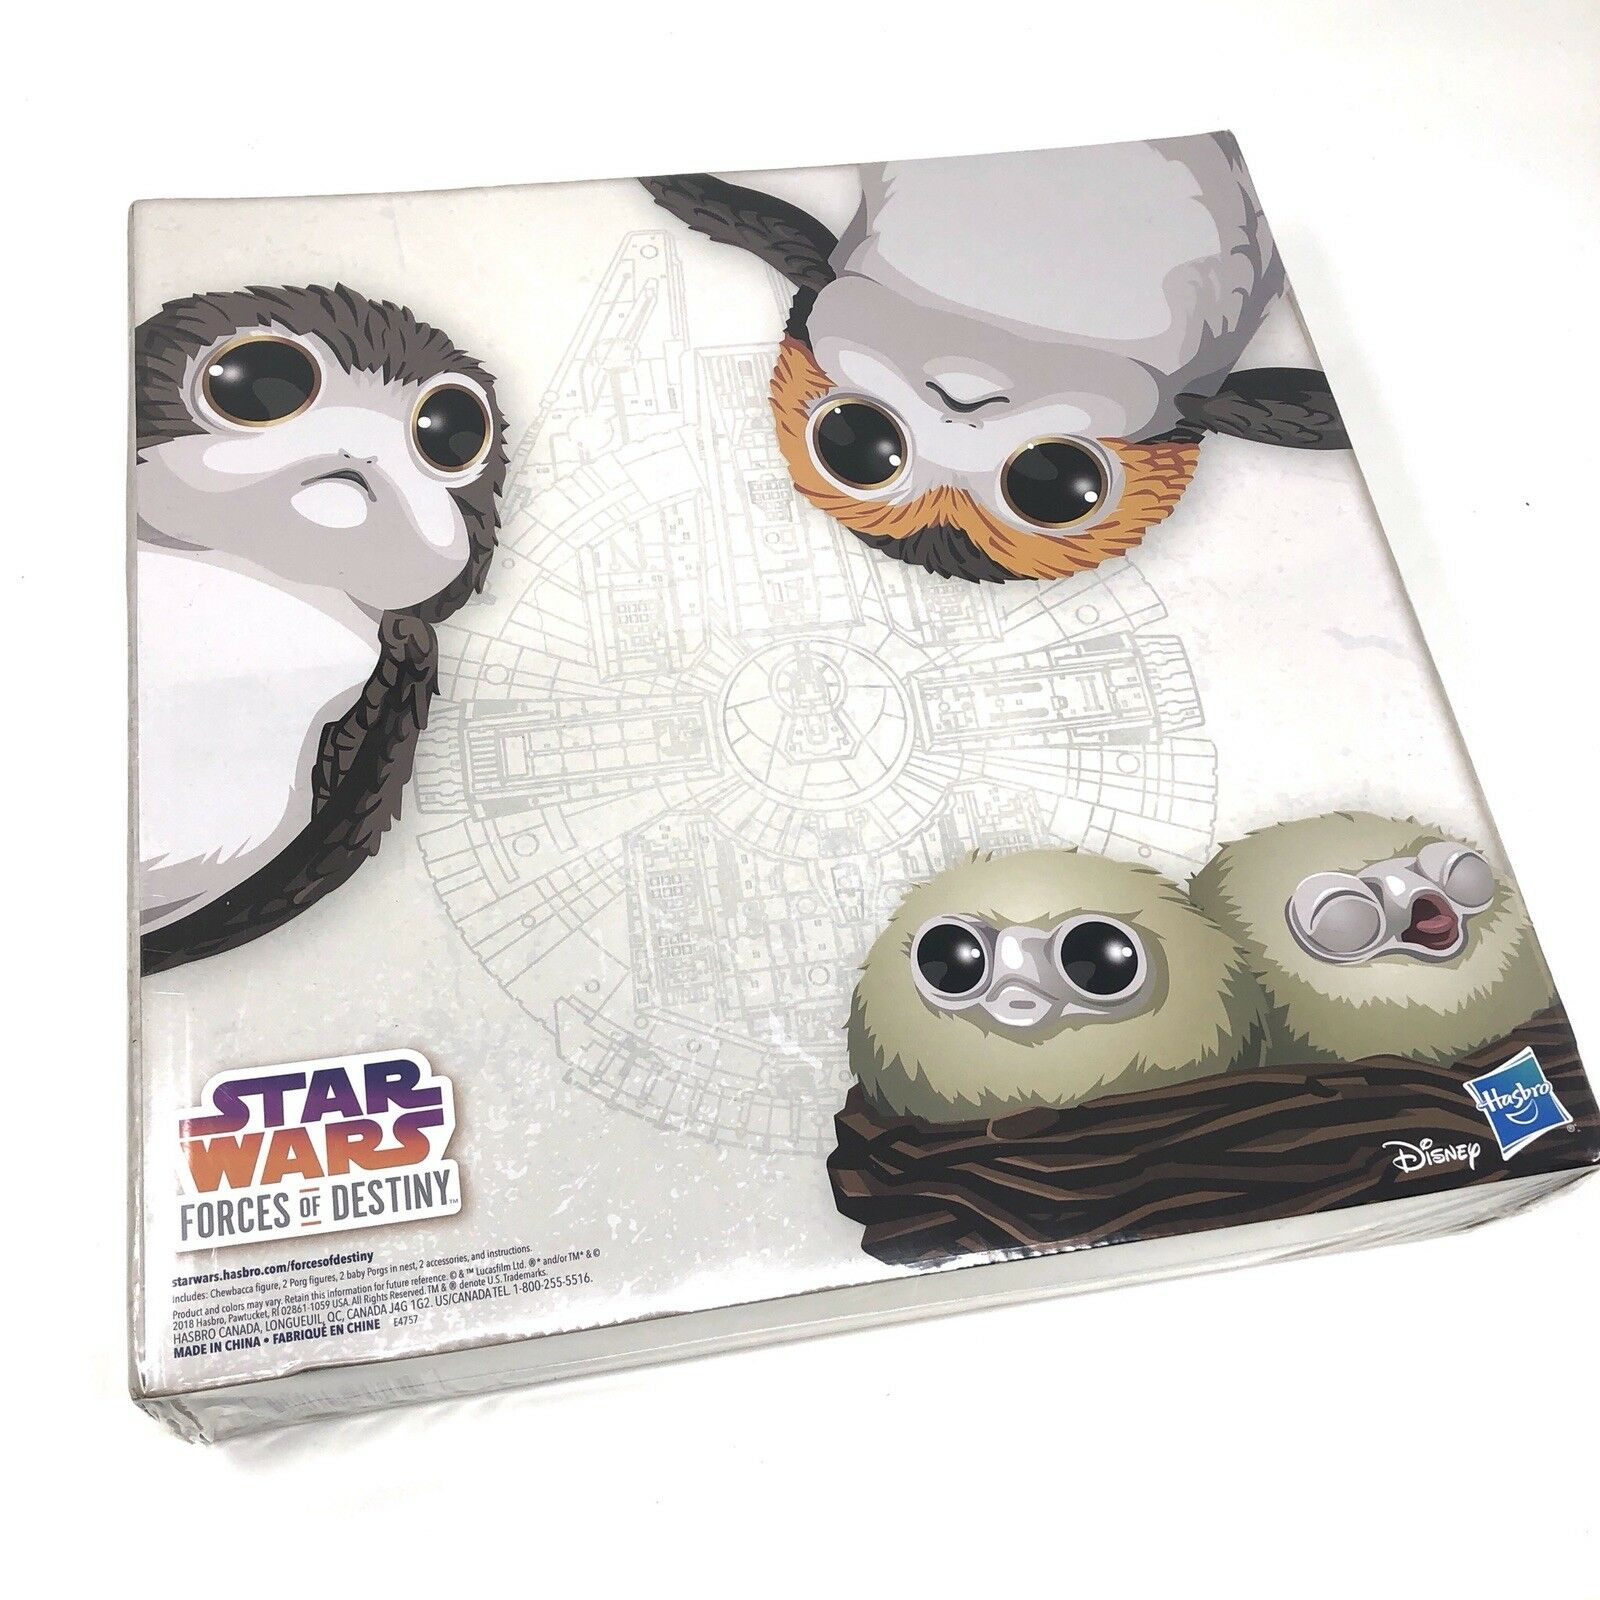 STAR WARS Forces of Destiny Chewbacca and Porgs Set SDCC 2018 Hasbro Exclusive